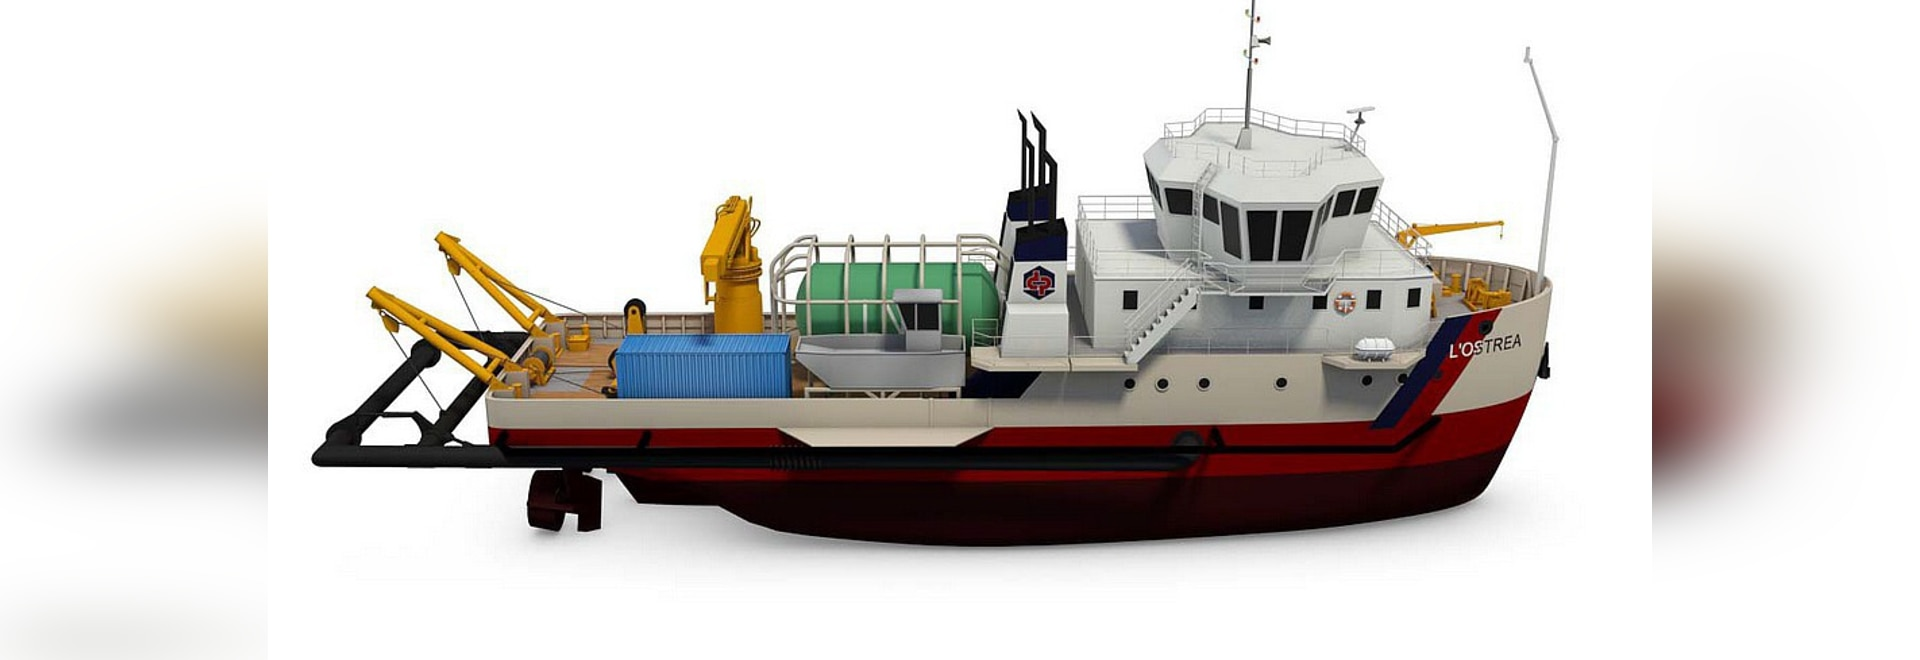 Dredge will use water injection dredging system